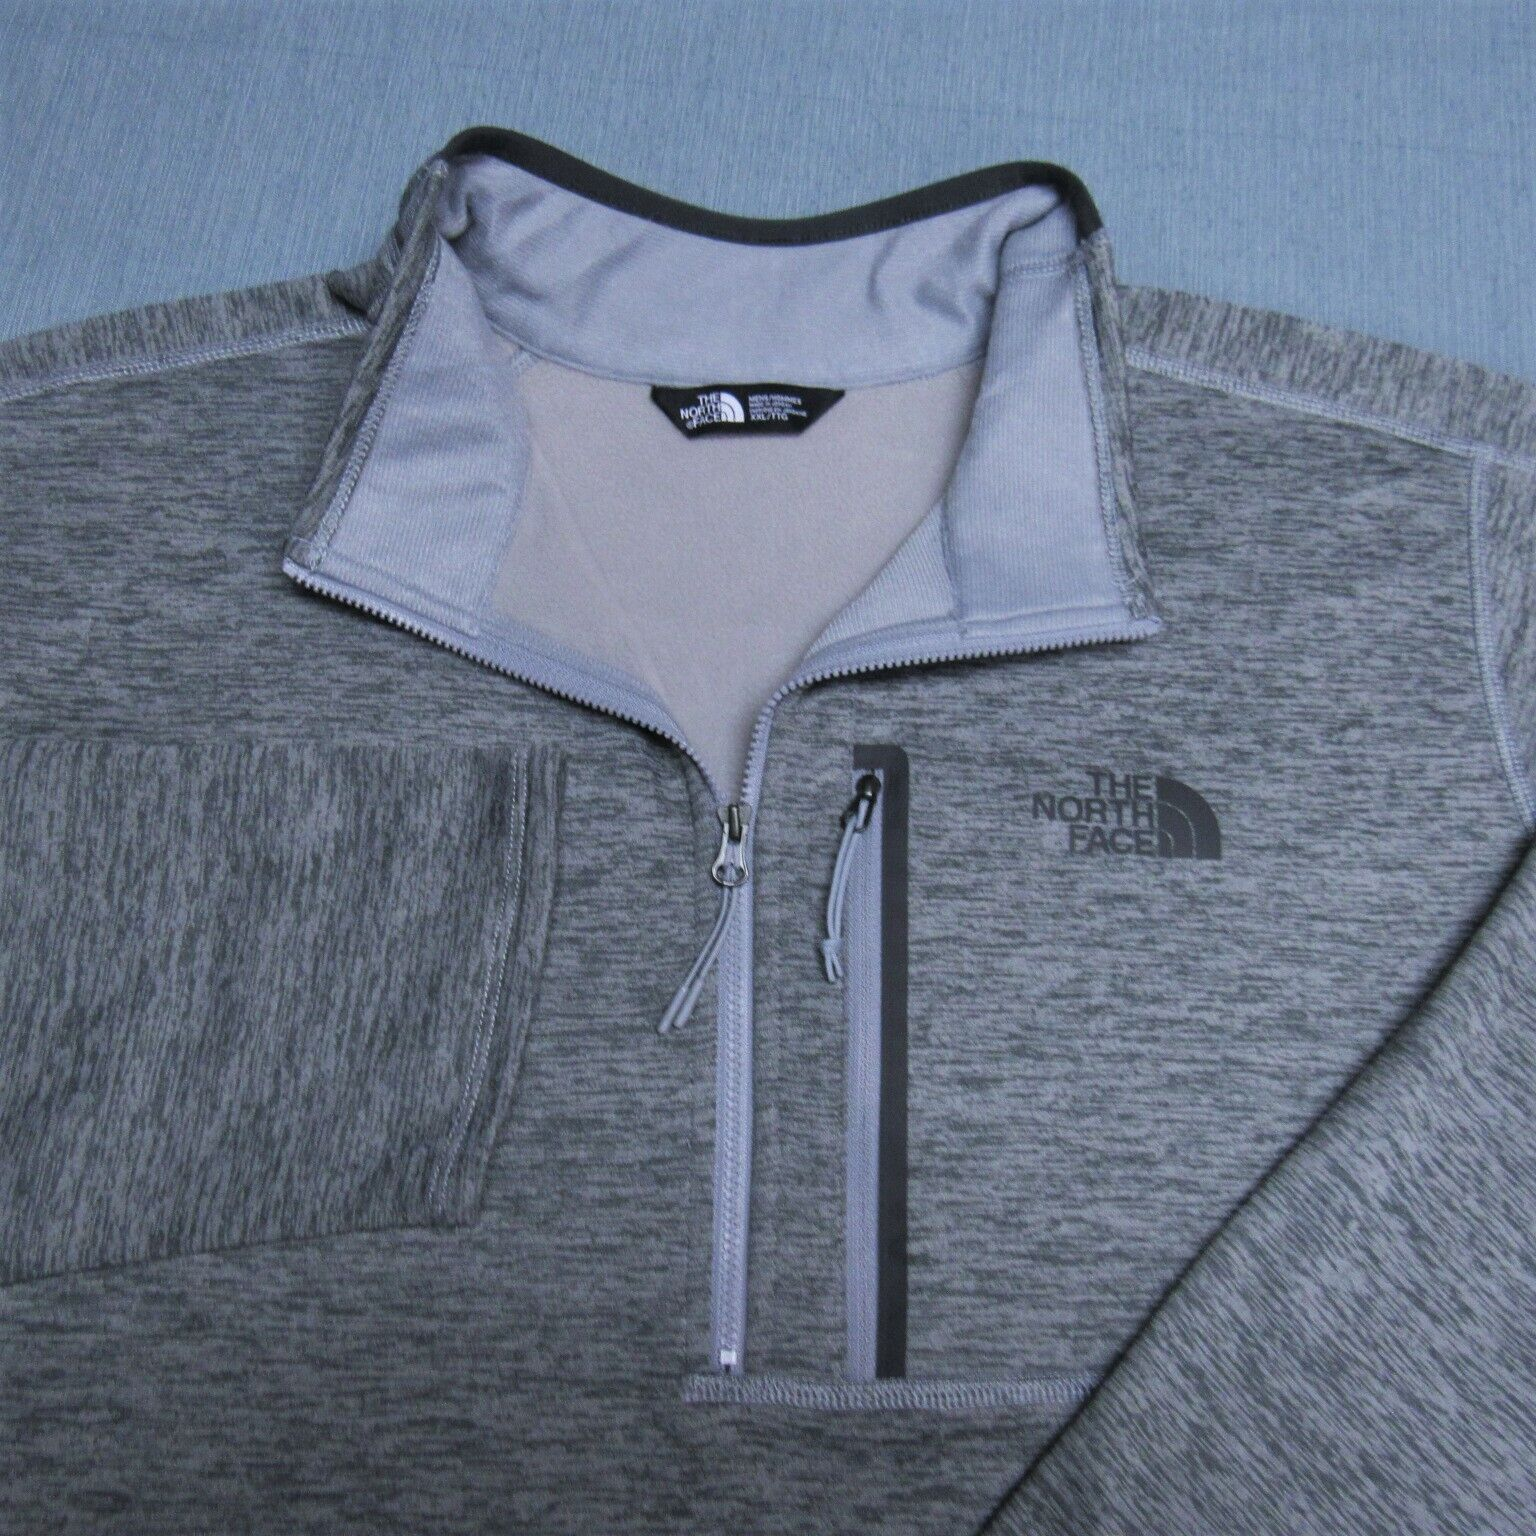 THE NORH FACE 1/4 ZIP THERMAL POLY SPANDEX PULLOVER-2XL-PERFECT SPOTLESS -NICE  - $5.74